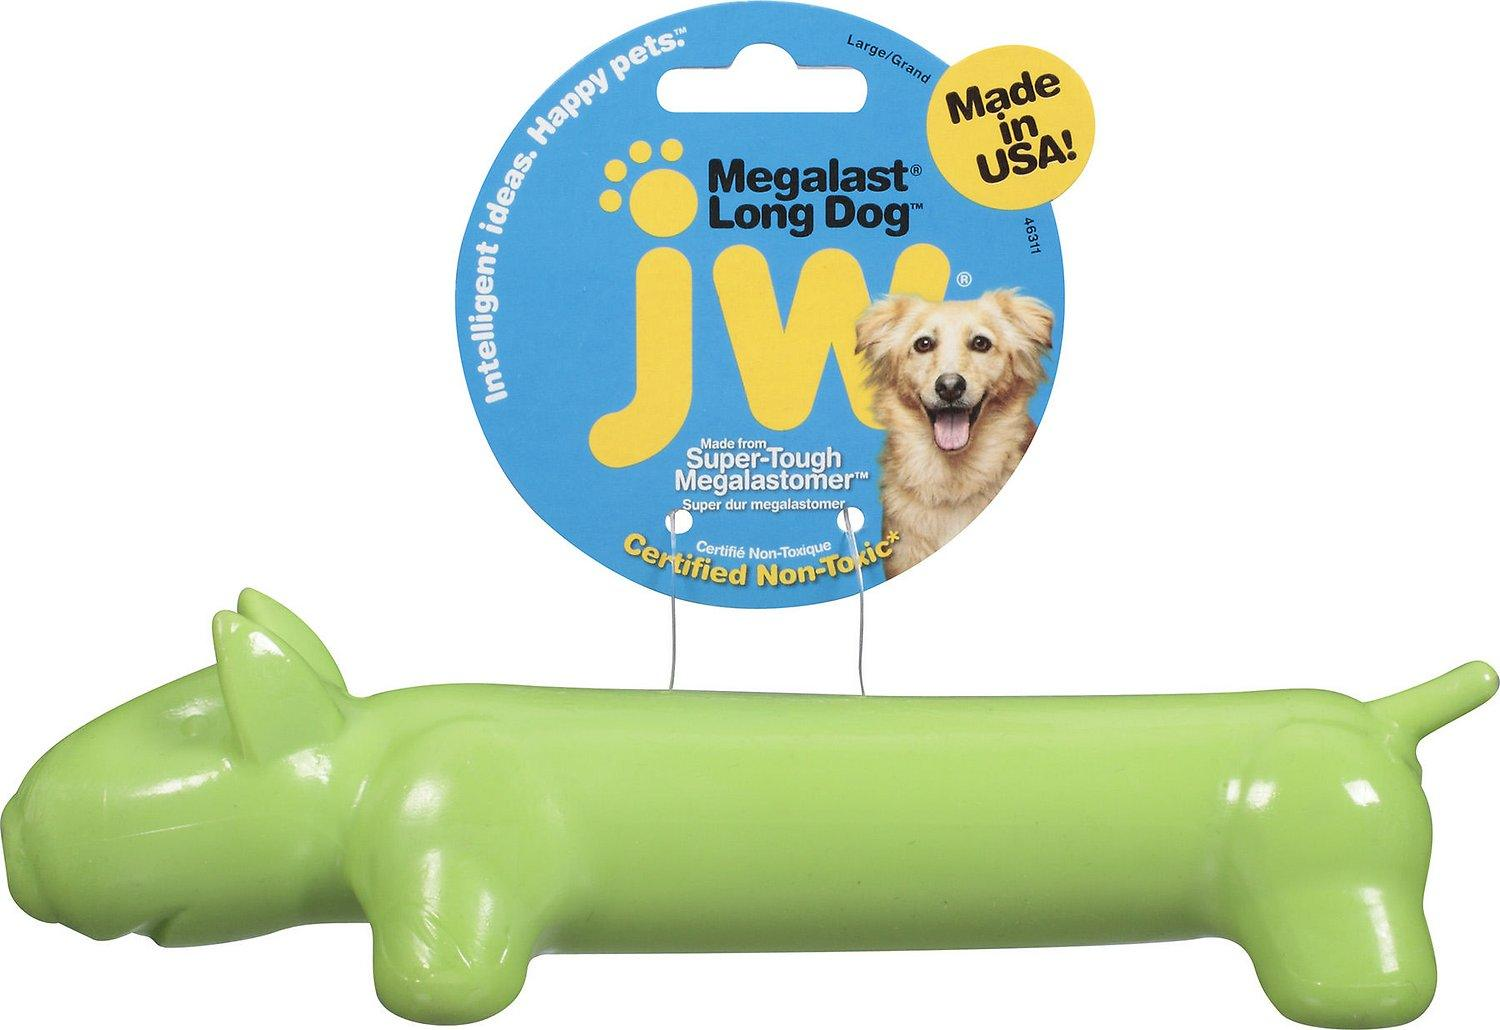 JW Megalast Long Dog Toy: 2 Sizes